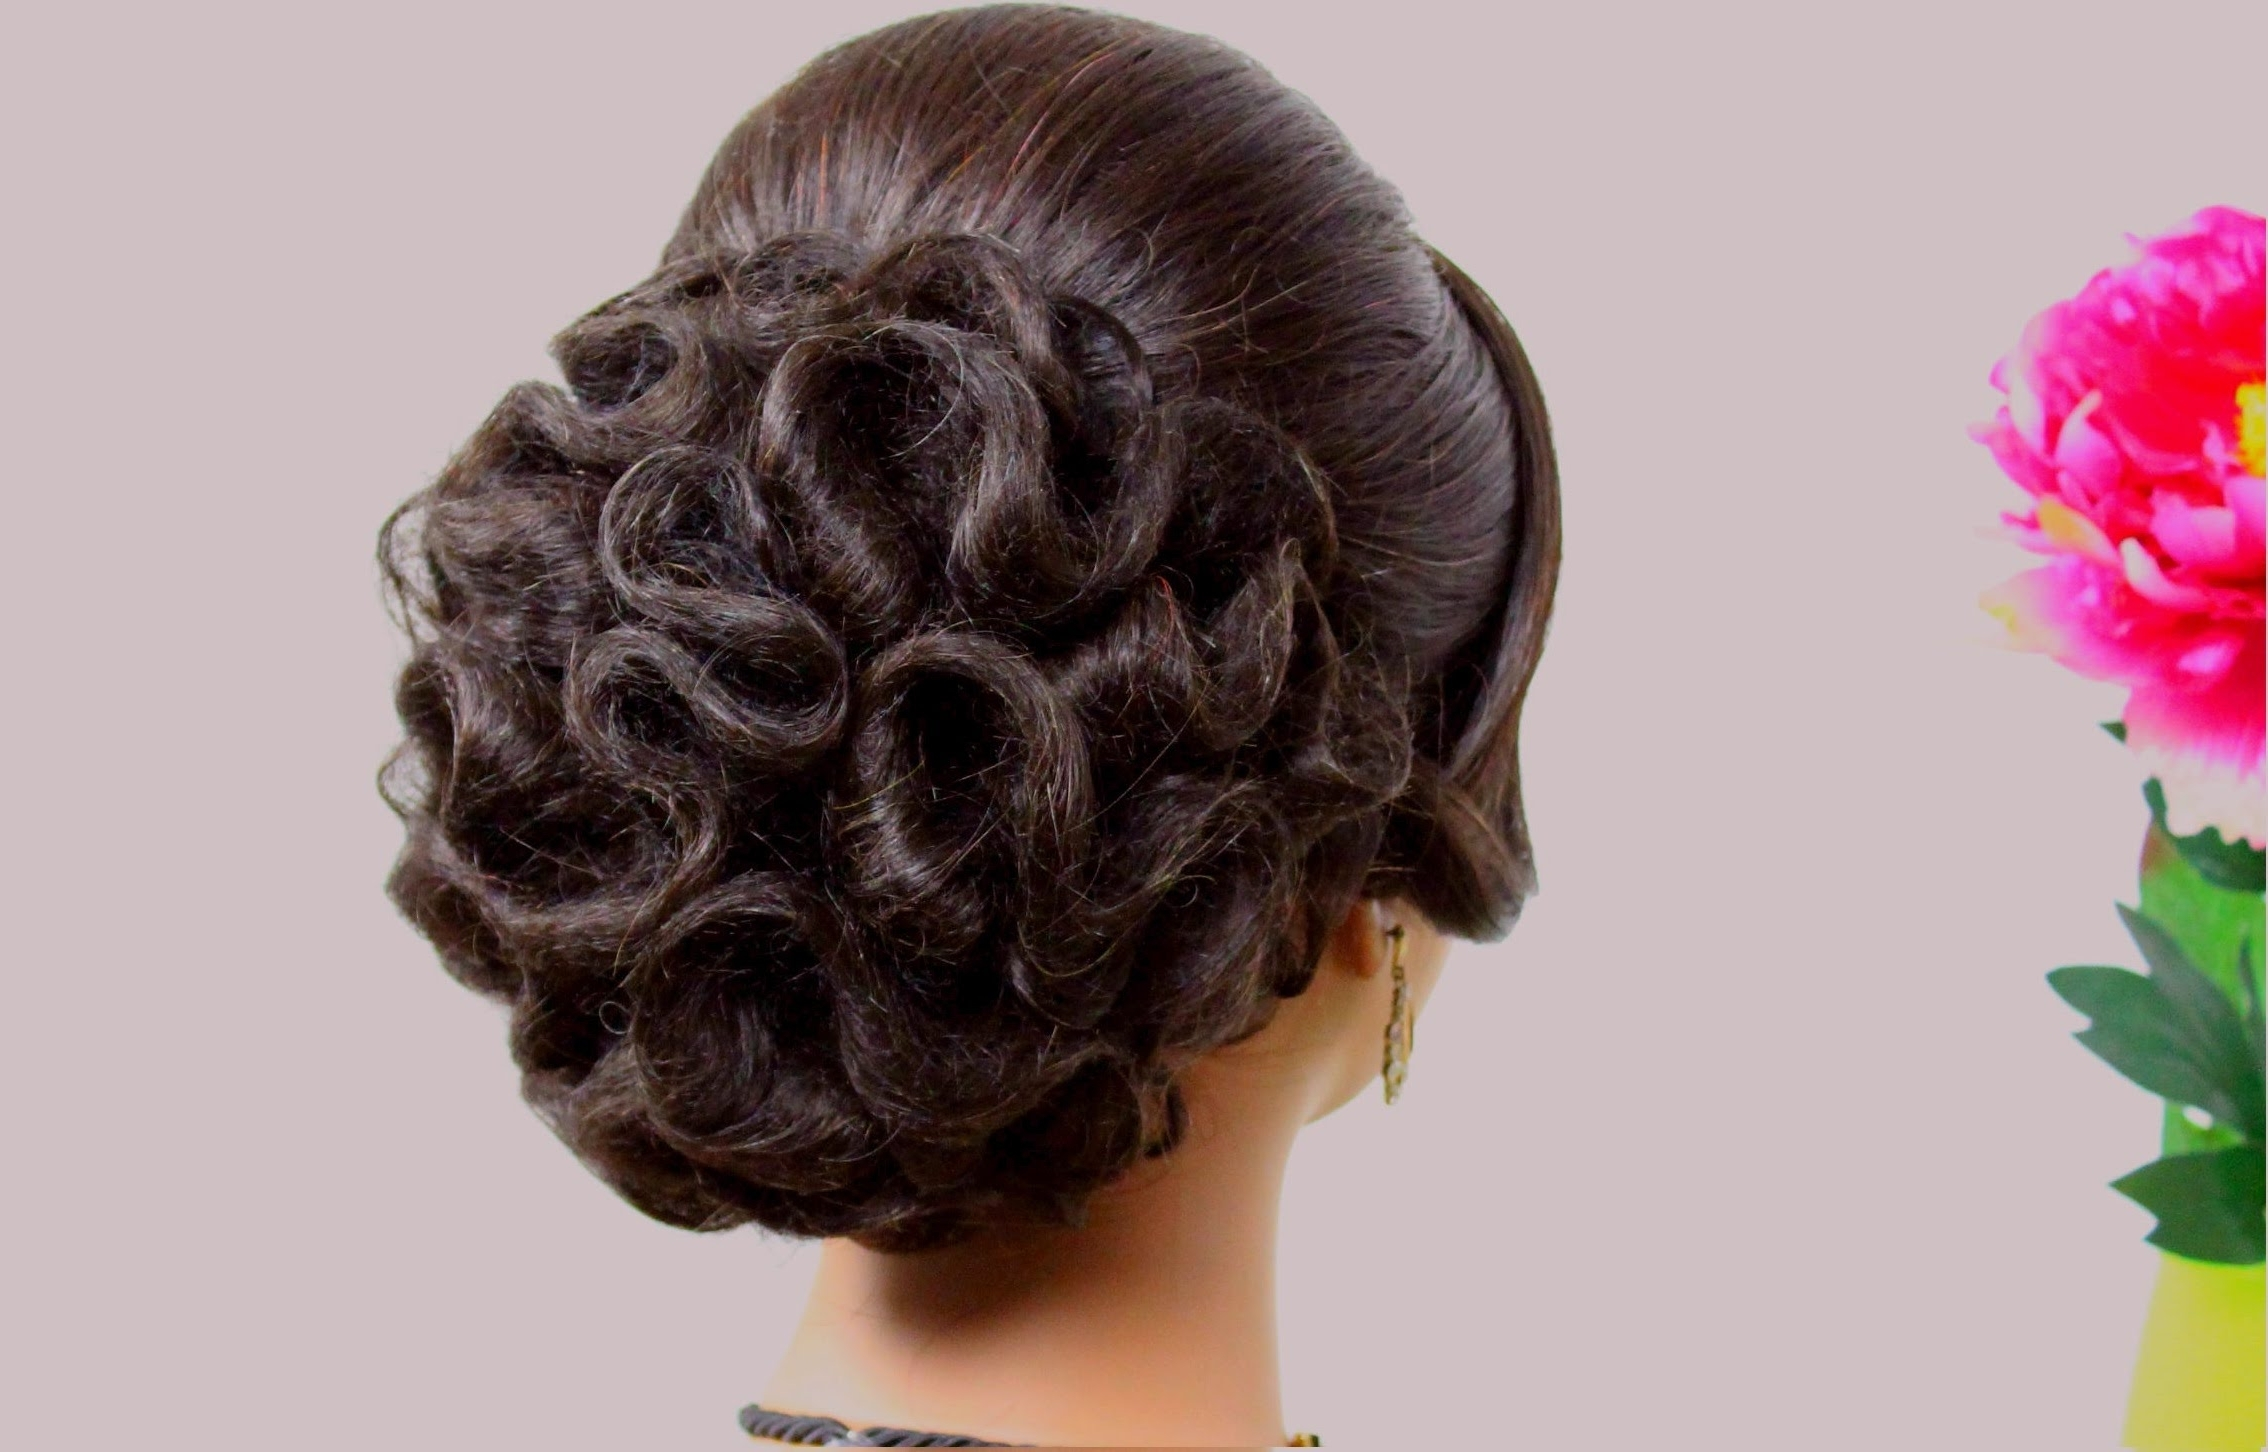 Bridal Hairstyle For Long Hair Tutorial (View 7 of 15)